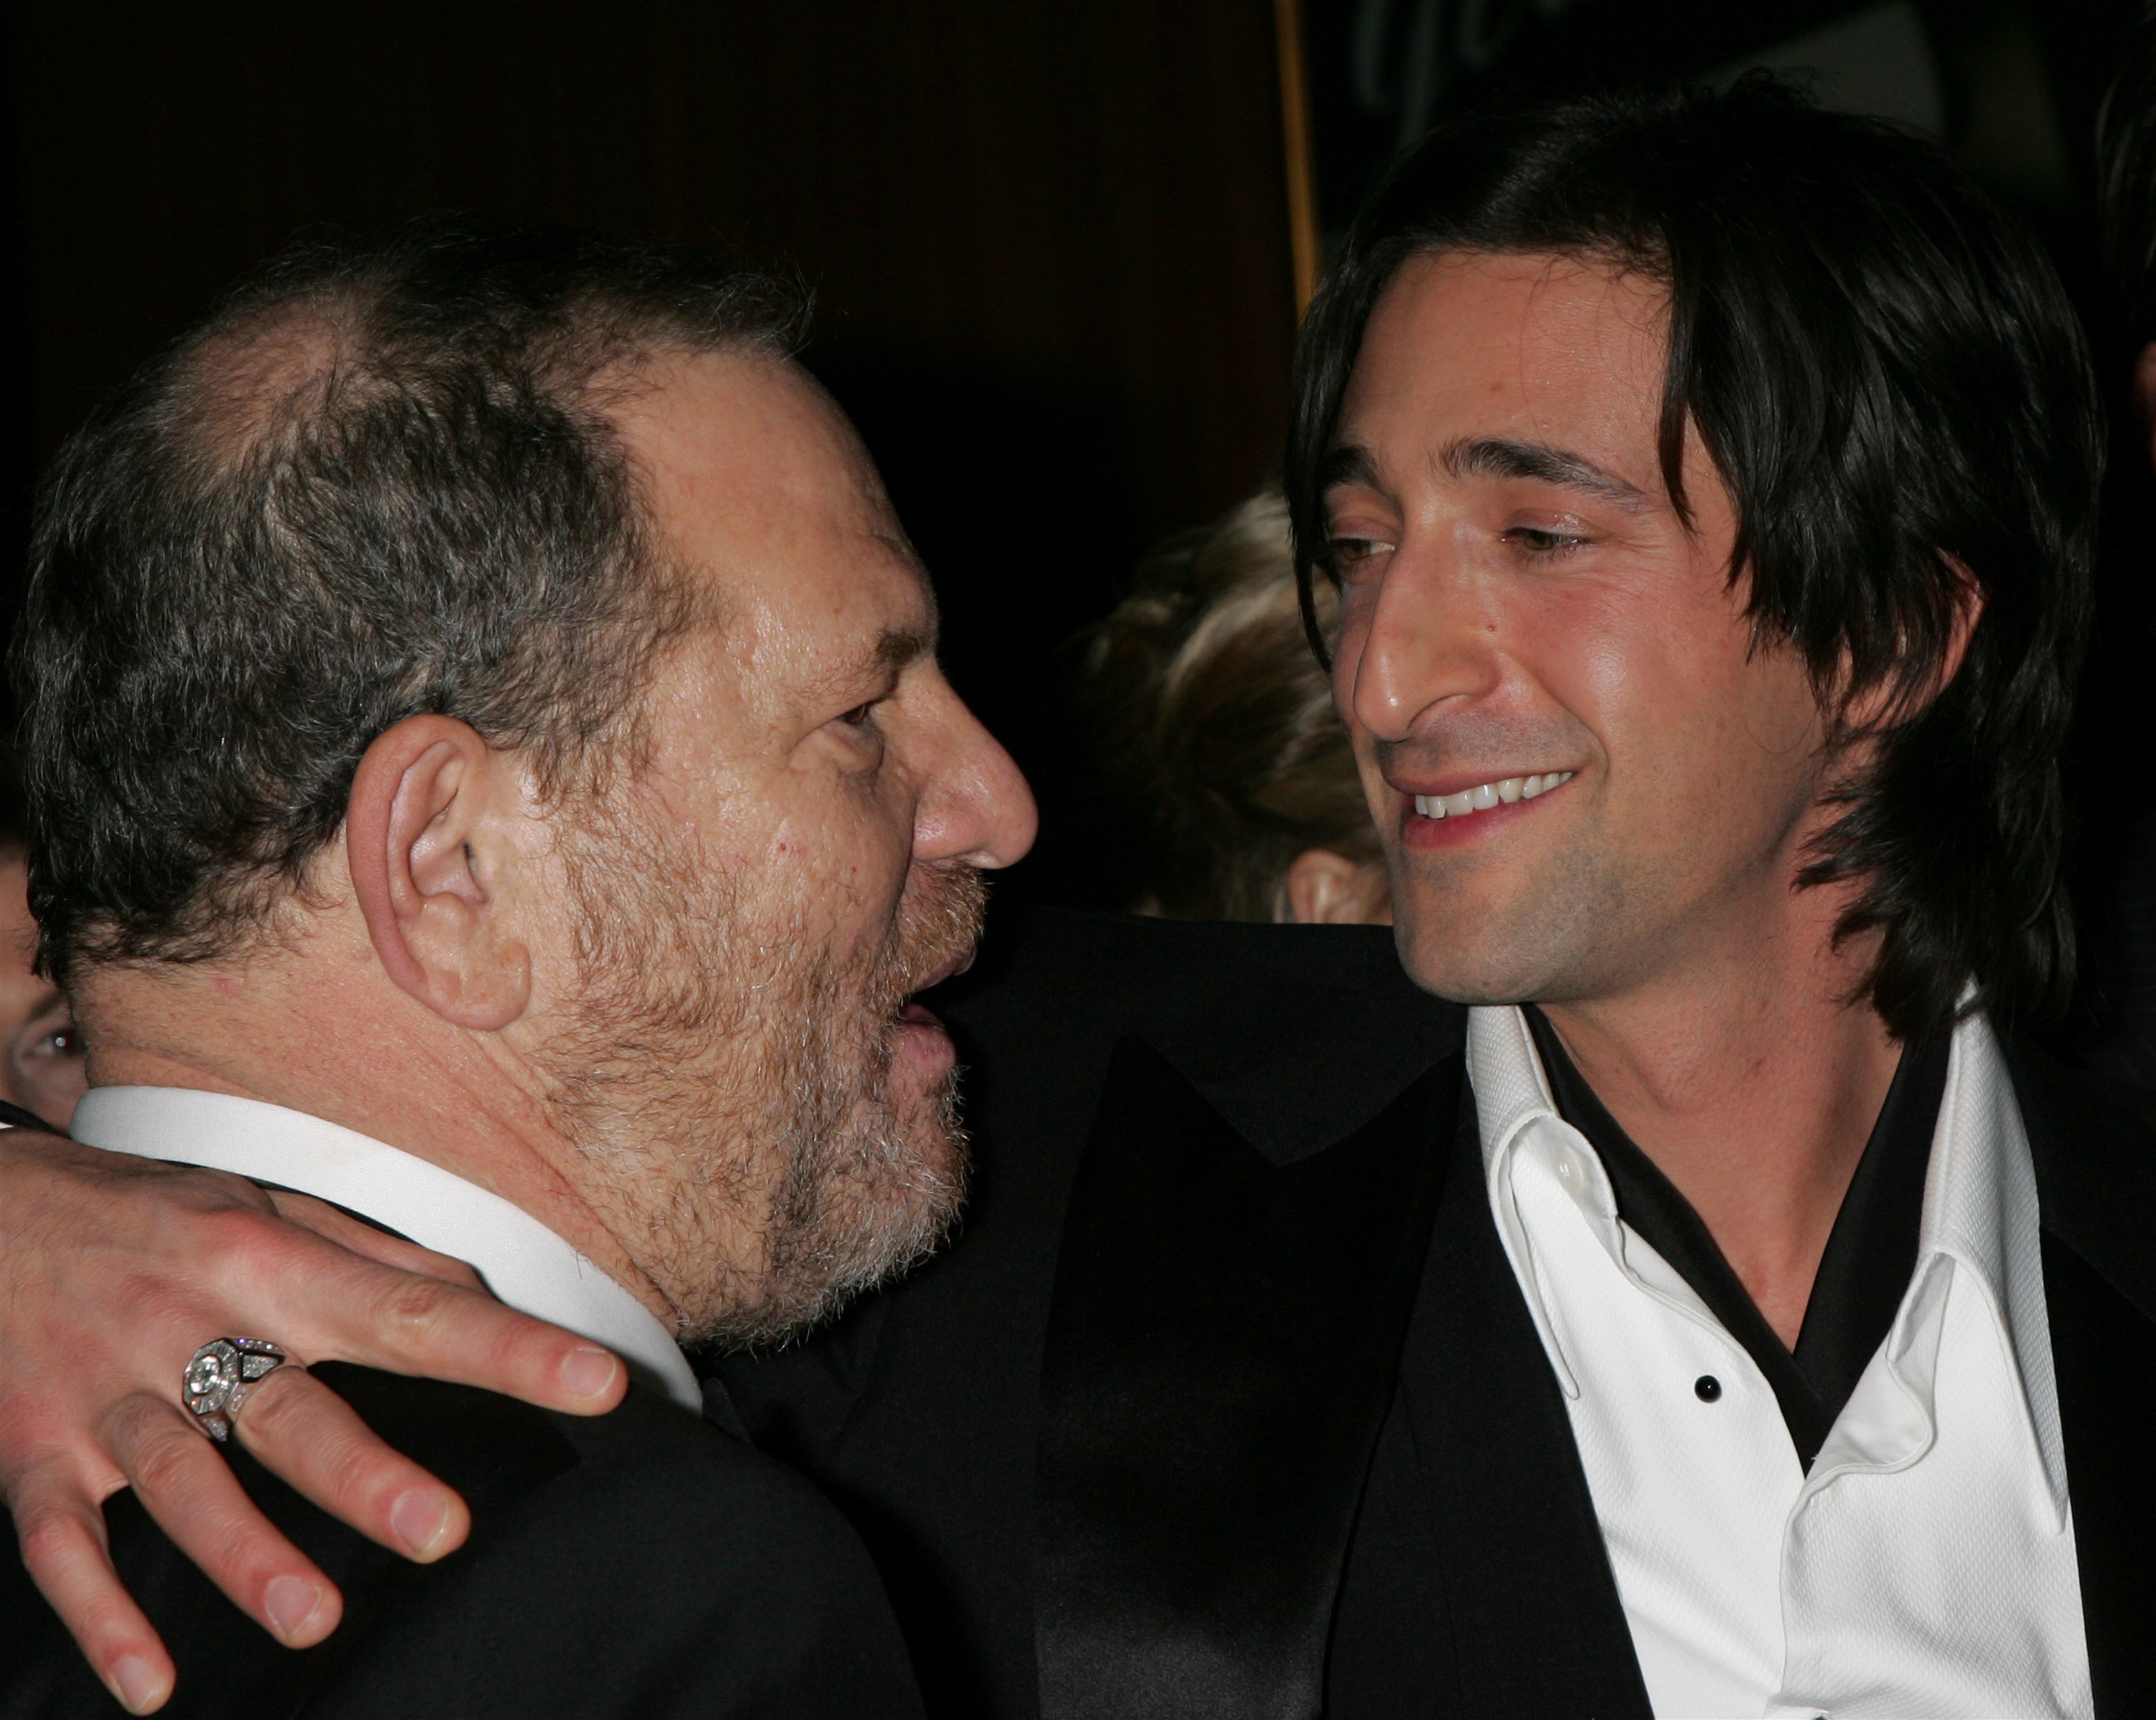 Producer Harvey Weinstein and actor Adrien Brody talk at the Weinstein Company's Golden Globes afterparty at Trader Vic's in Beverly Hills on Jan. 16, 2006.